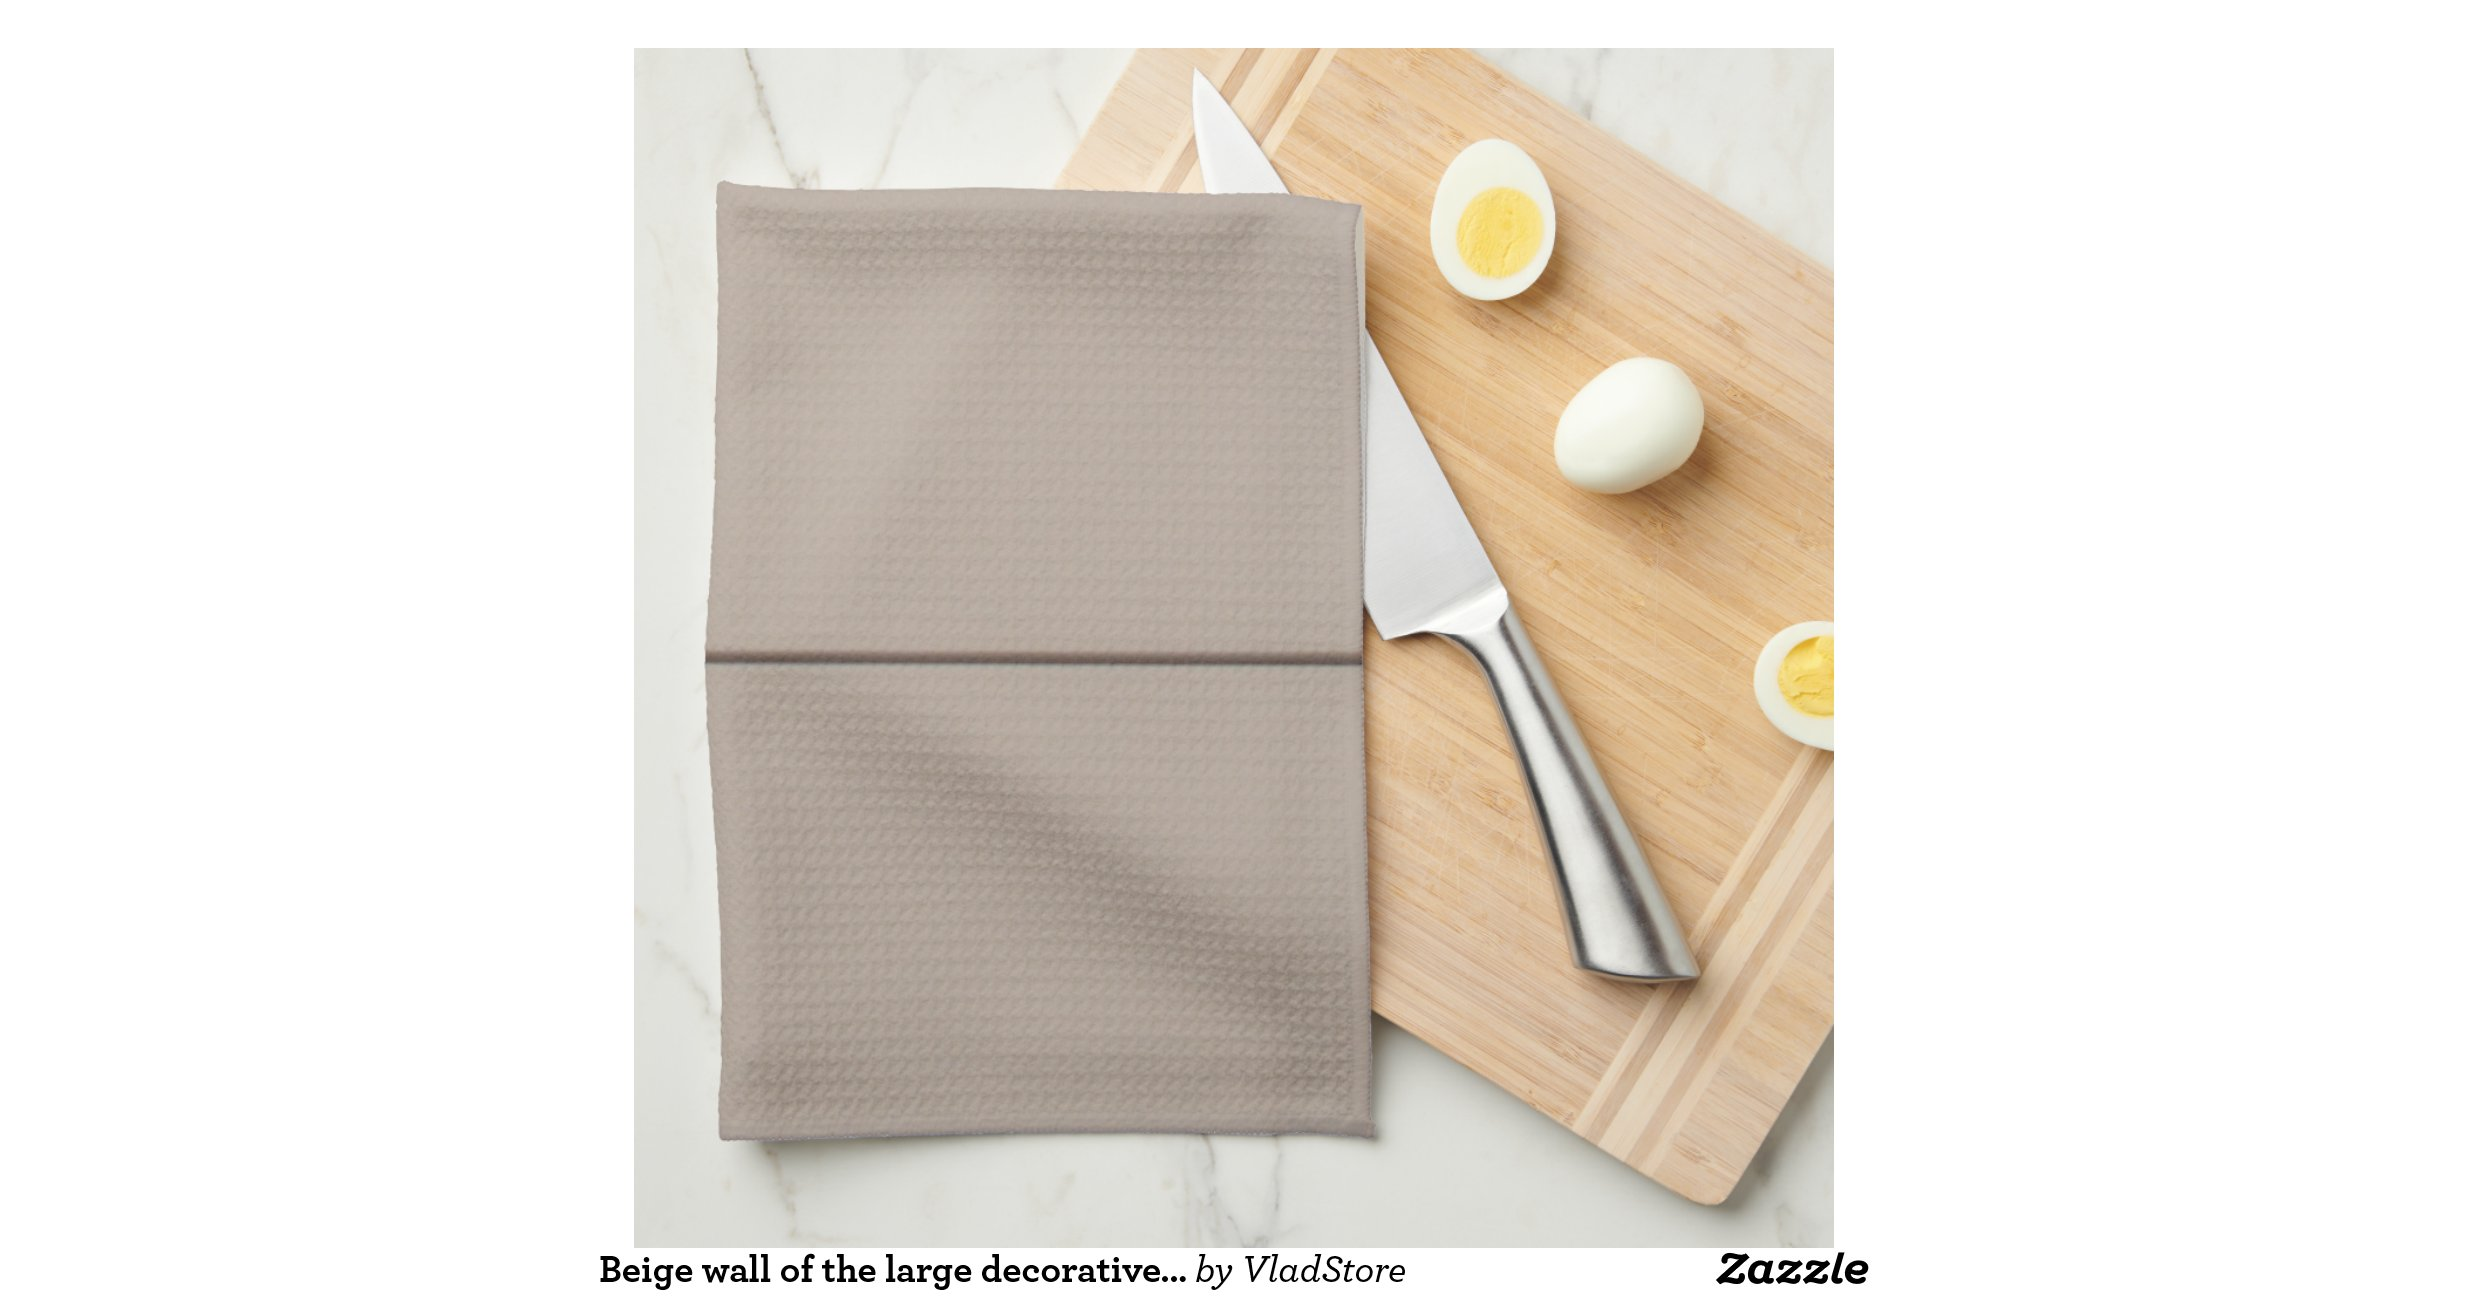 Beige wall of the large decorative tiles kitchen towels zazzle - Decorative tiles for kitchen walls ...